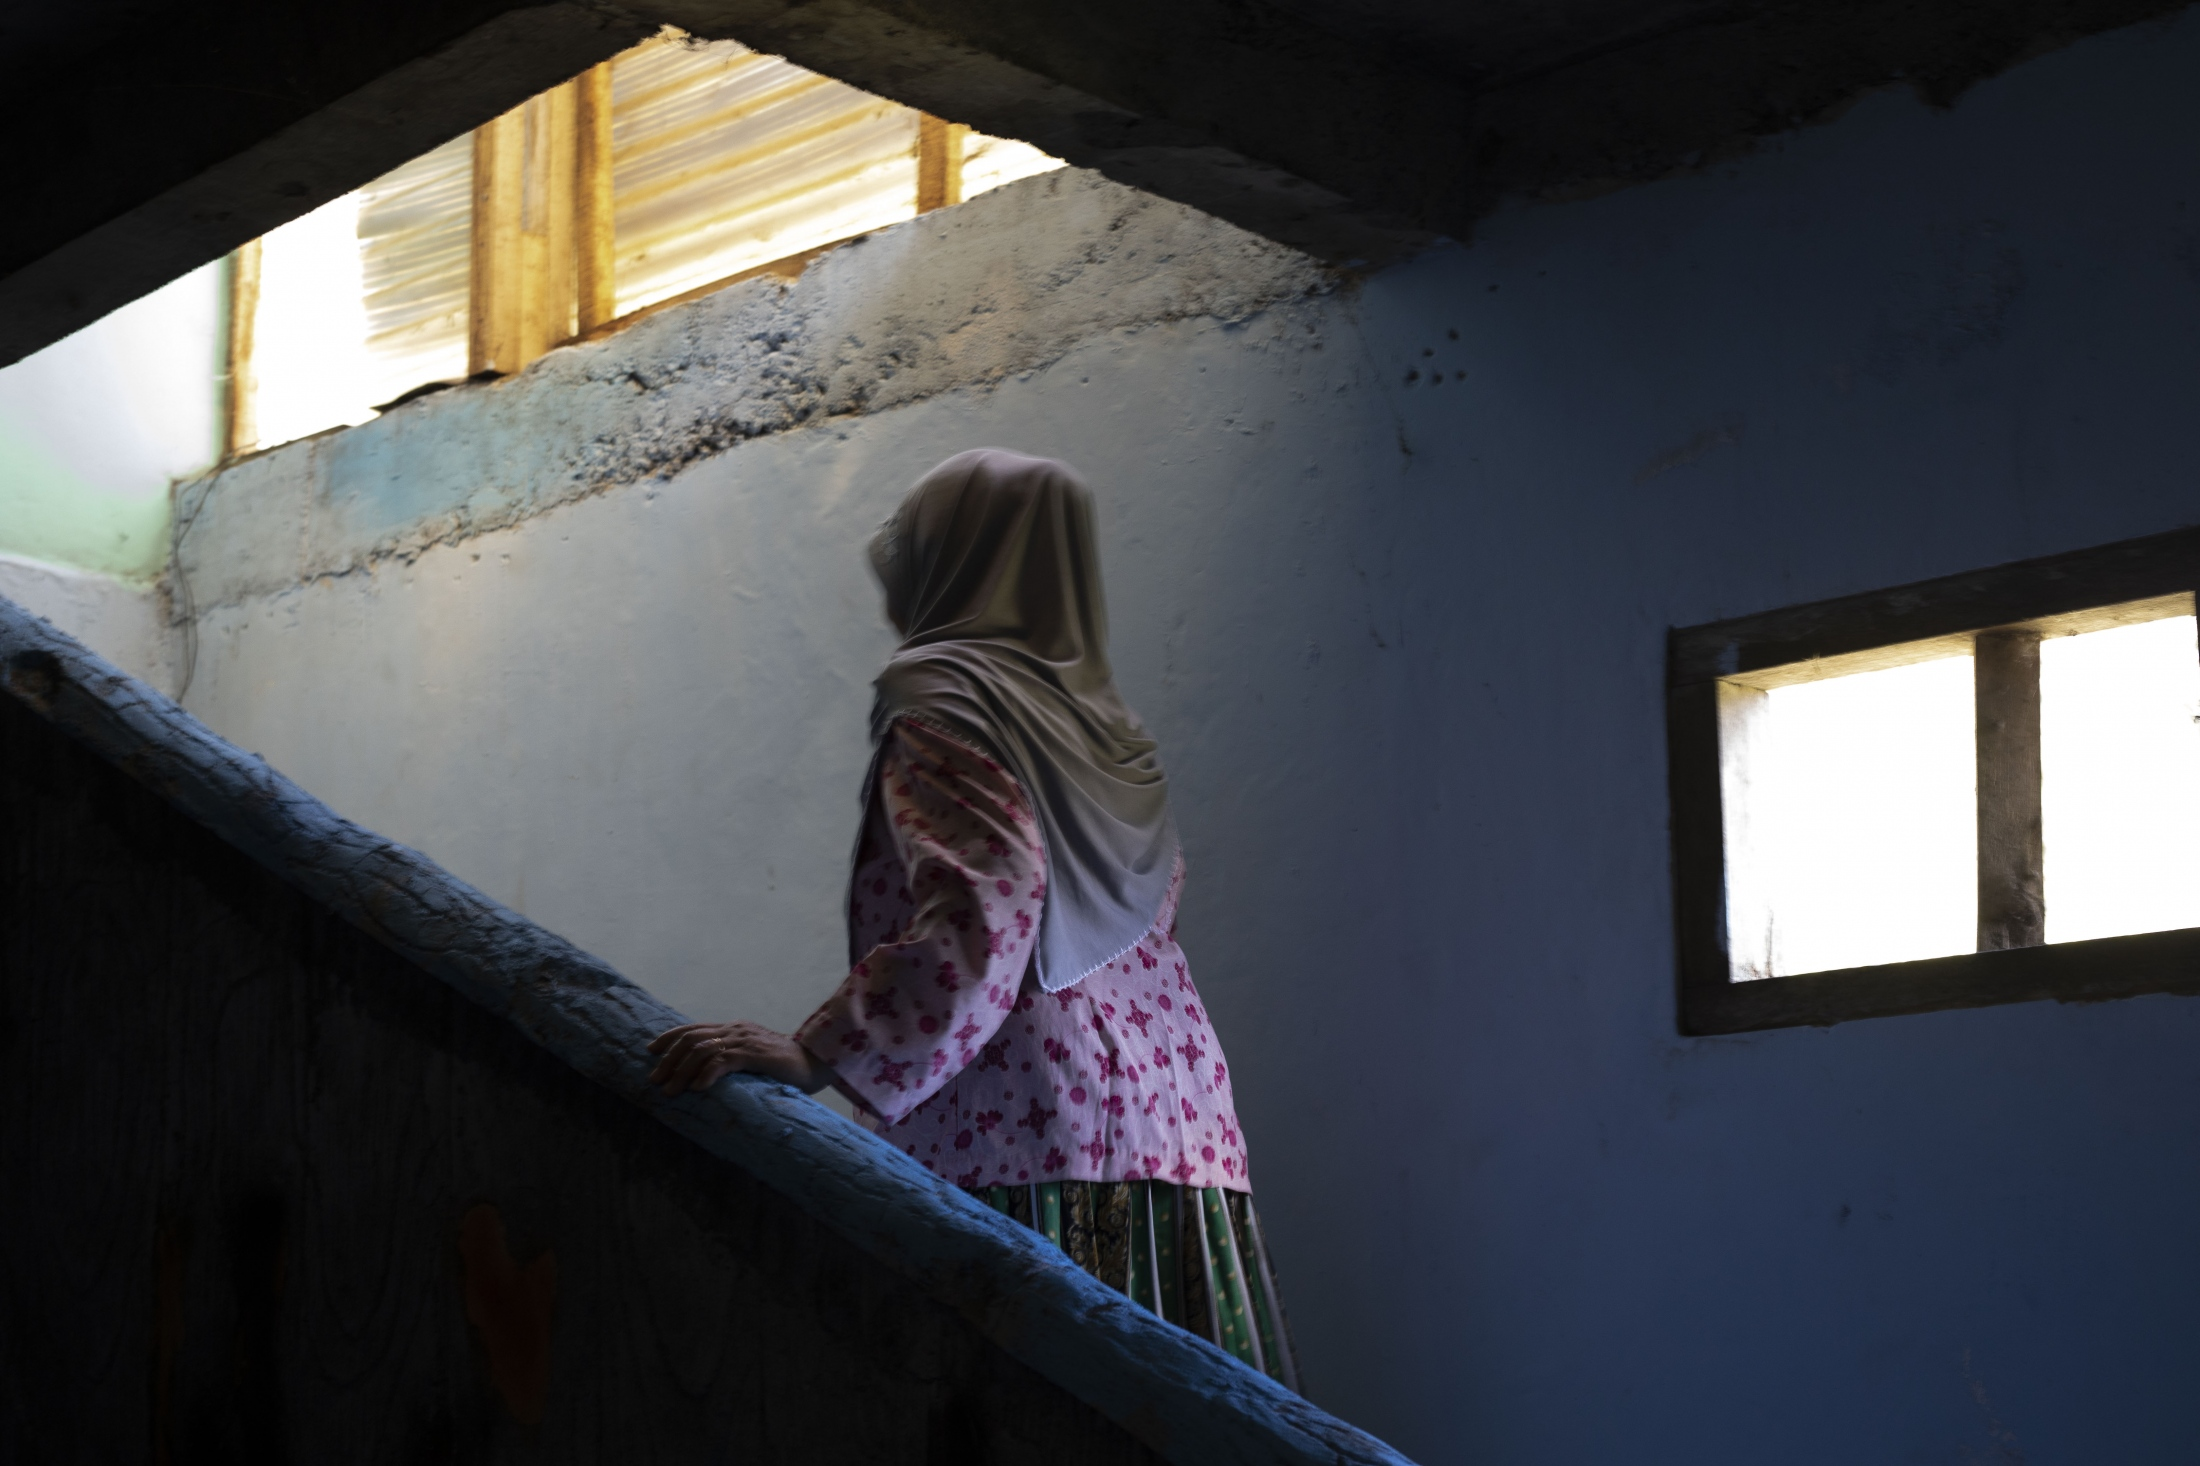 Mbah Parish walks up the stairs in her house. It is simple but new like all in the relocation village of Karang Kendal.